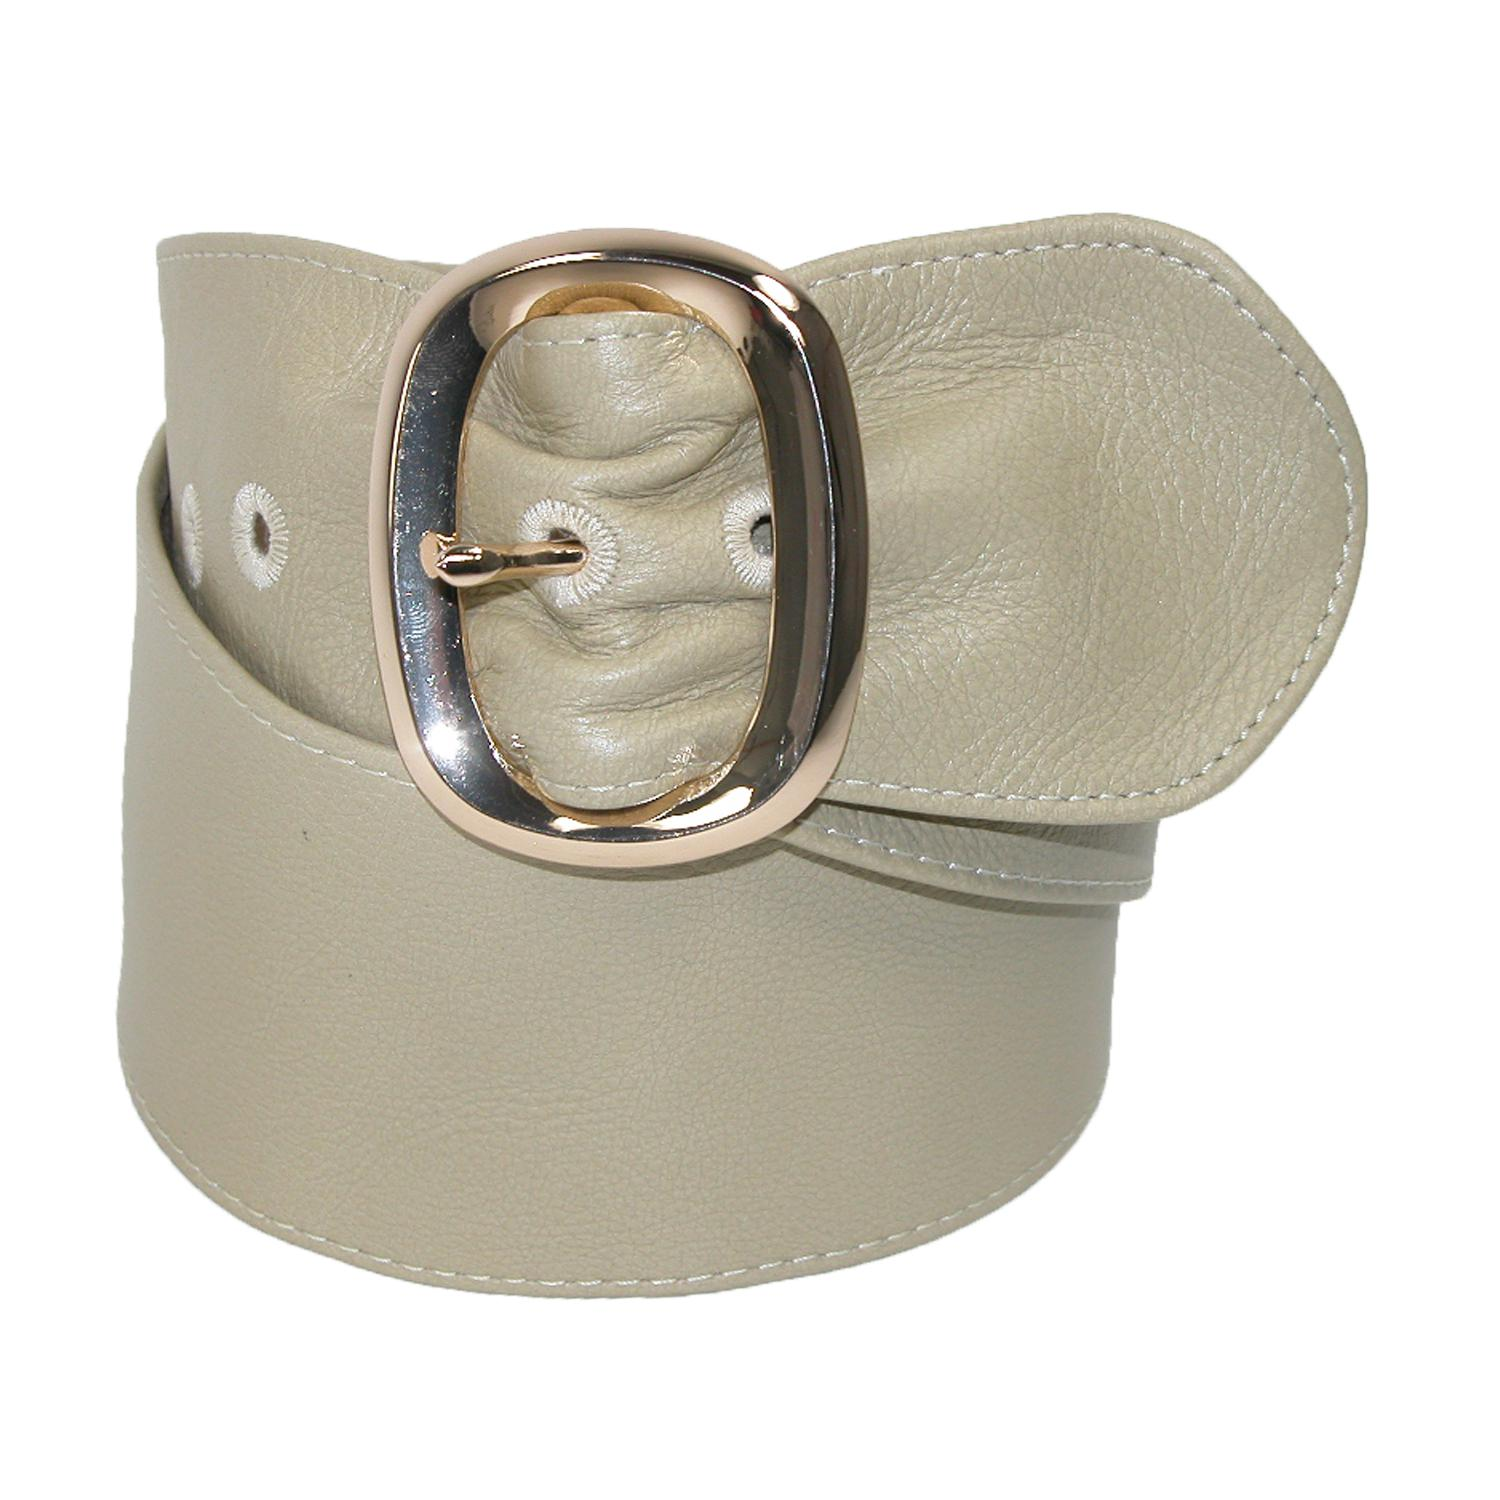 Landes Womens Italian Leather Sash Belt